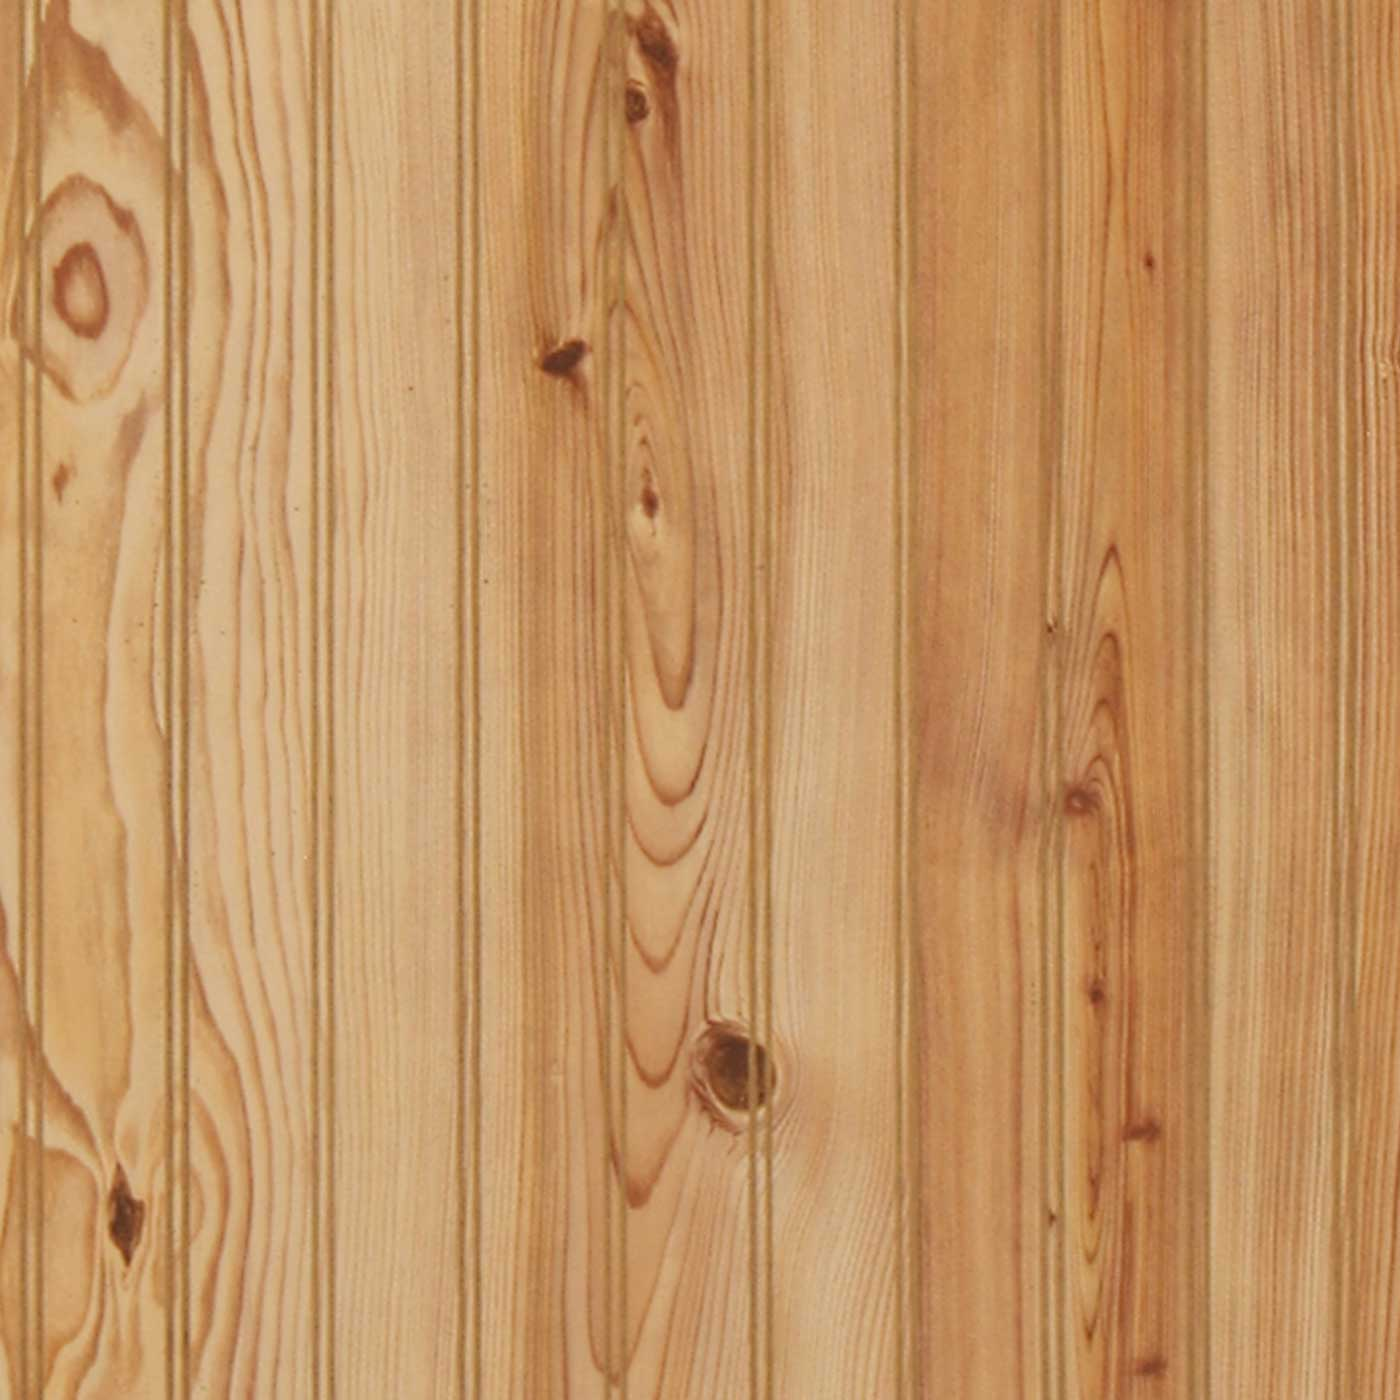 Remodeling Knotty Pine: Knotty Pine Laminate Flooring Remodeling Ideas